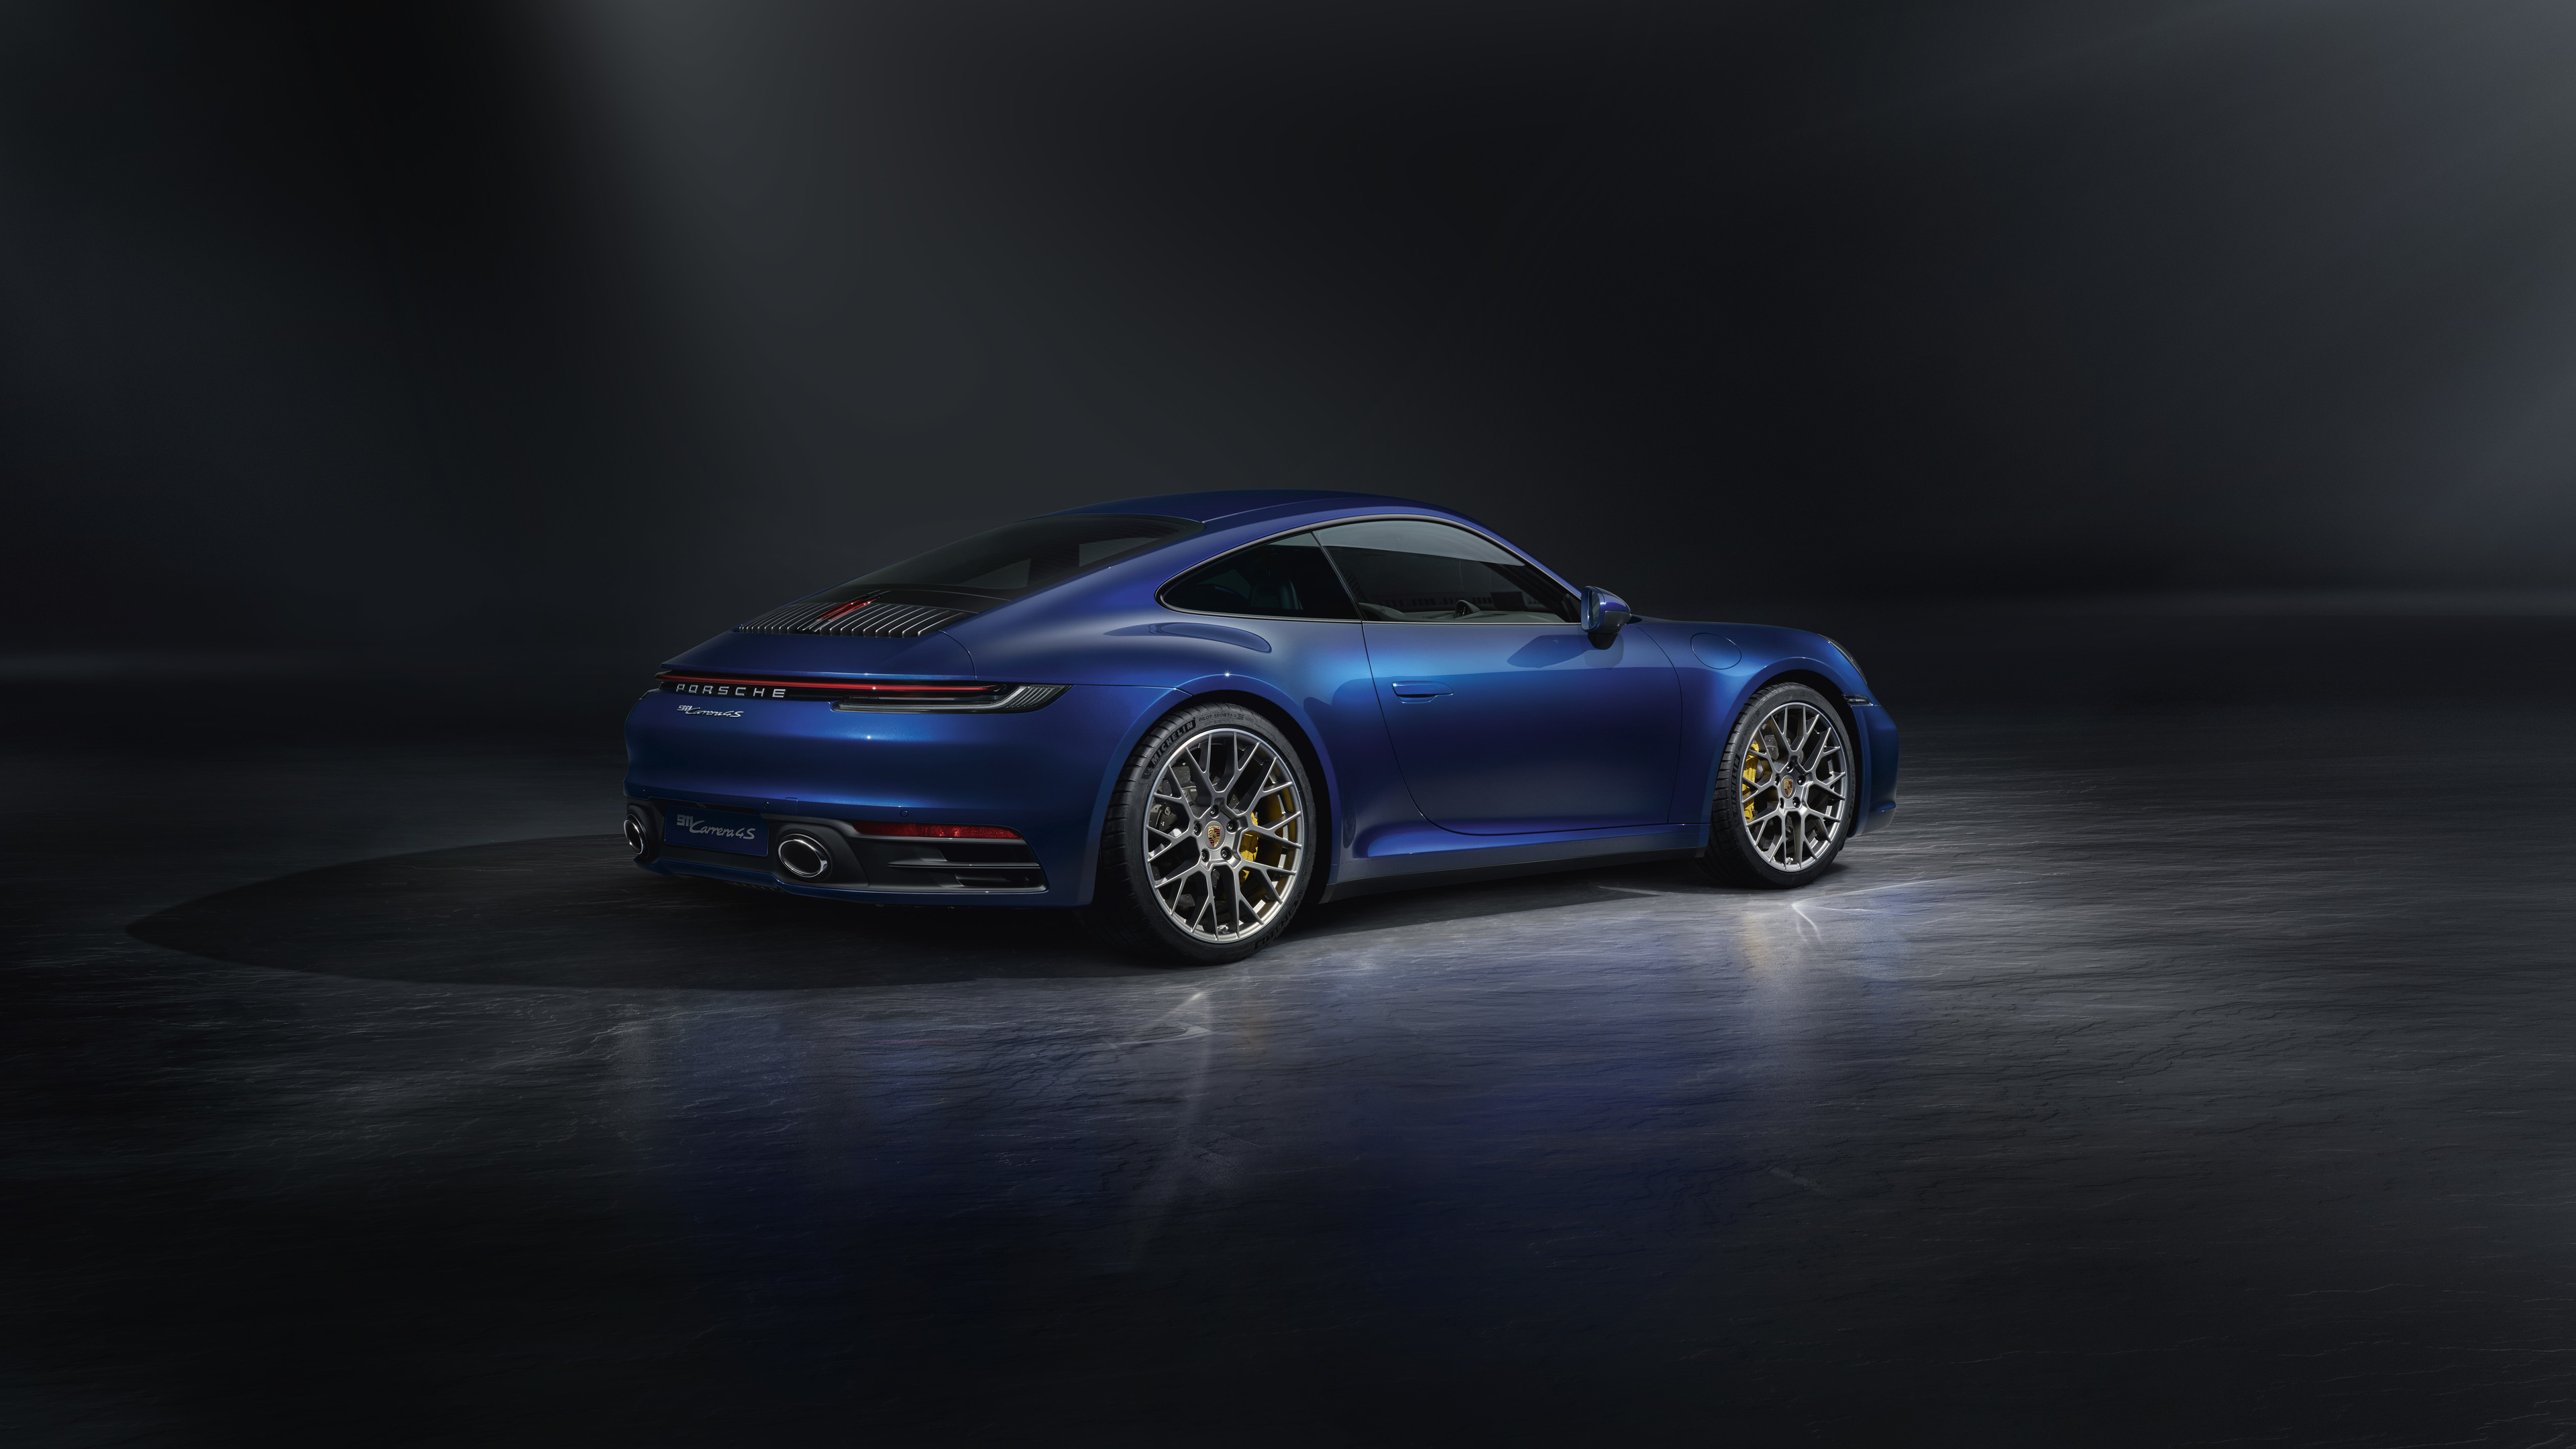 blue porsche 911 rear 4k 1546362092 - Blue Porsche 911 Rear 4k - porsche wallpapers, porsche 911 wallpapers, hd-wallpapers, cars wallpapers, 5k wallpapers, 4k-wallpapers